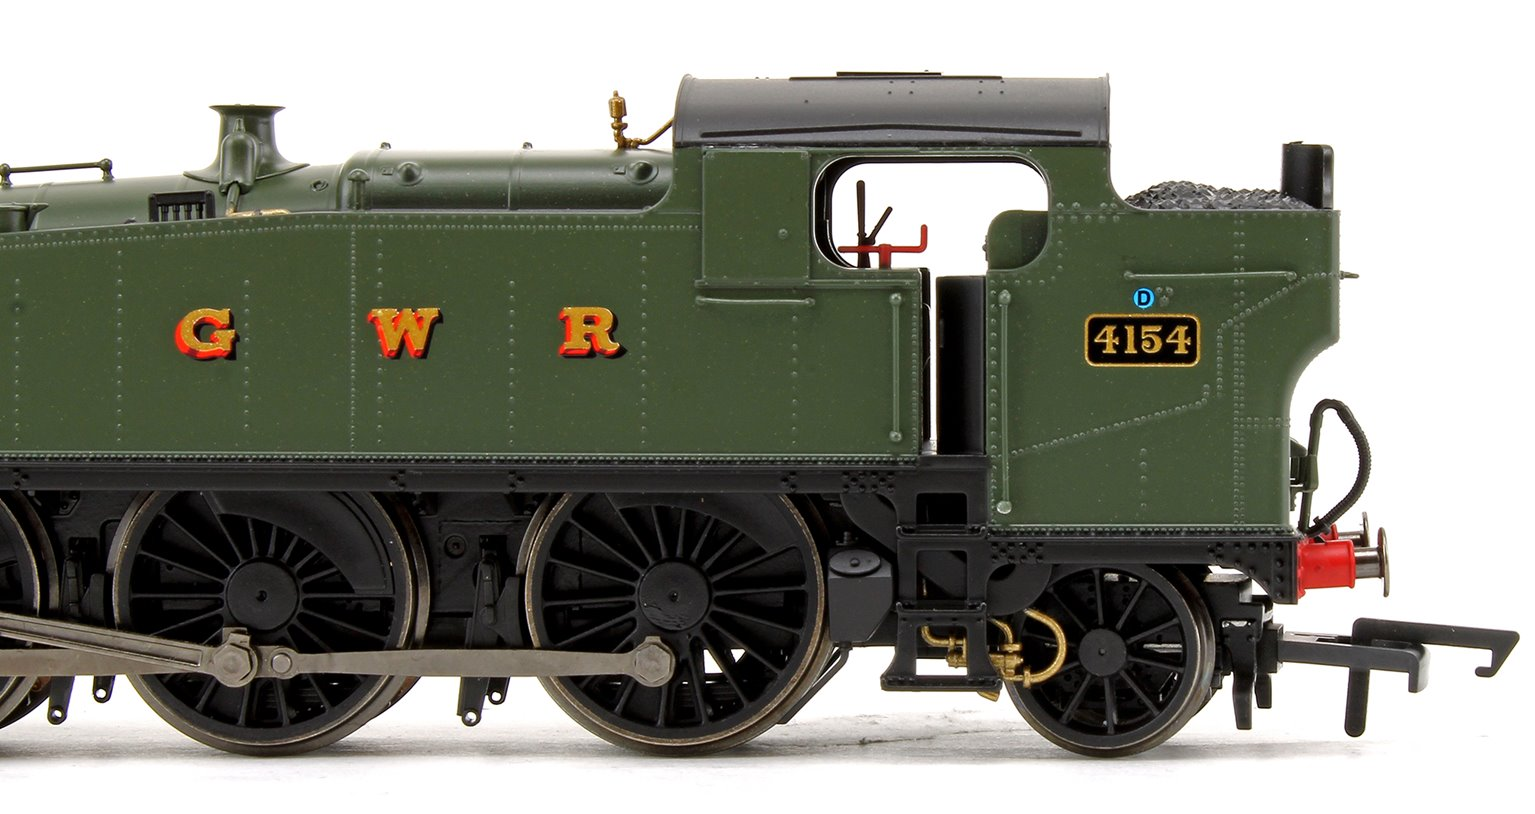 Class 5101 Large Prairie GWR Green 2-6-2 Tank Locomotive No.4154